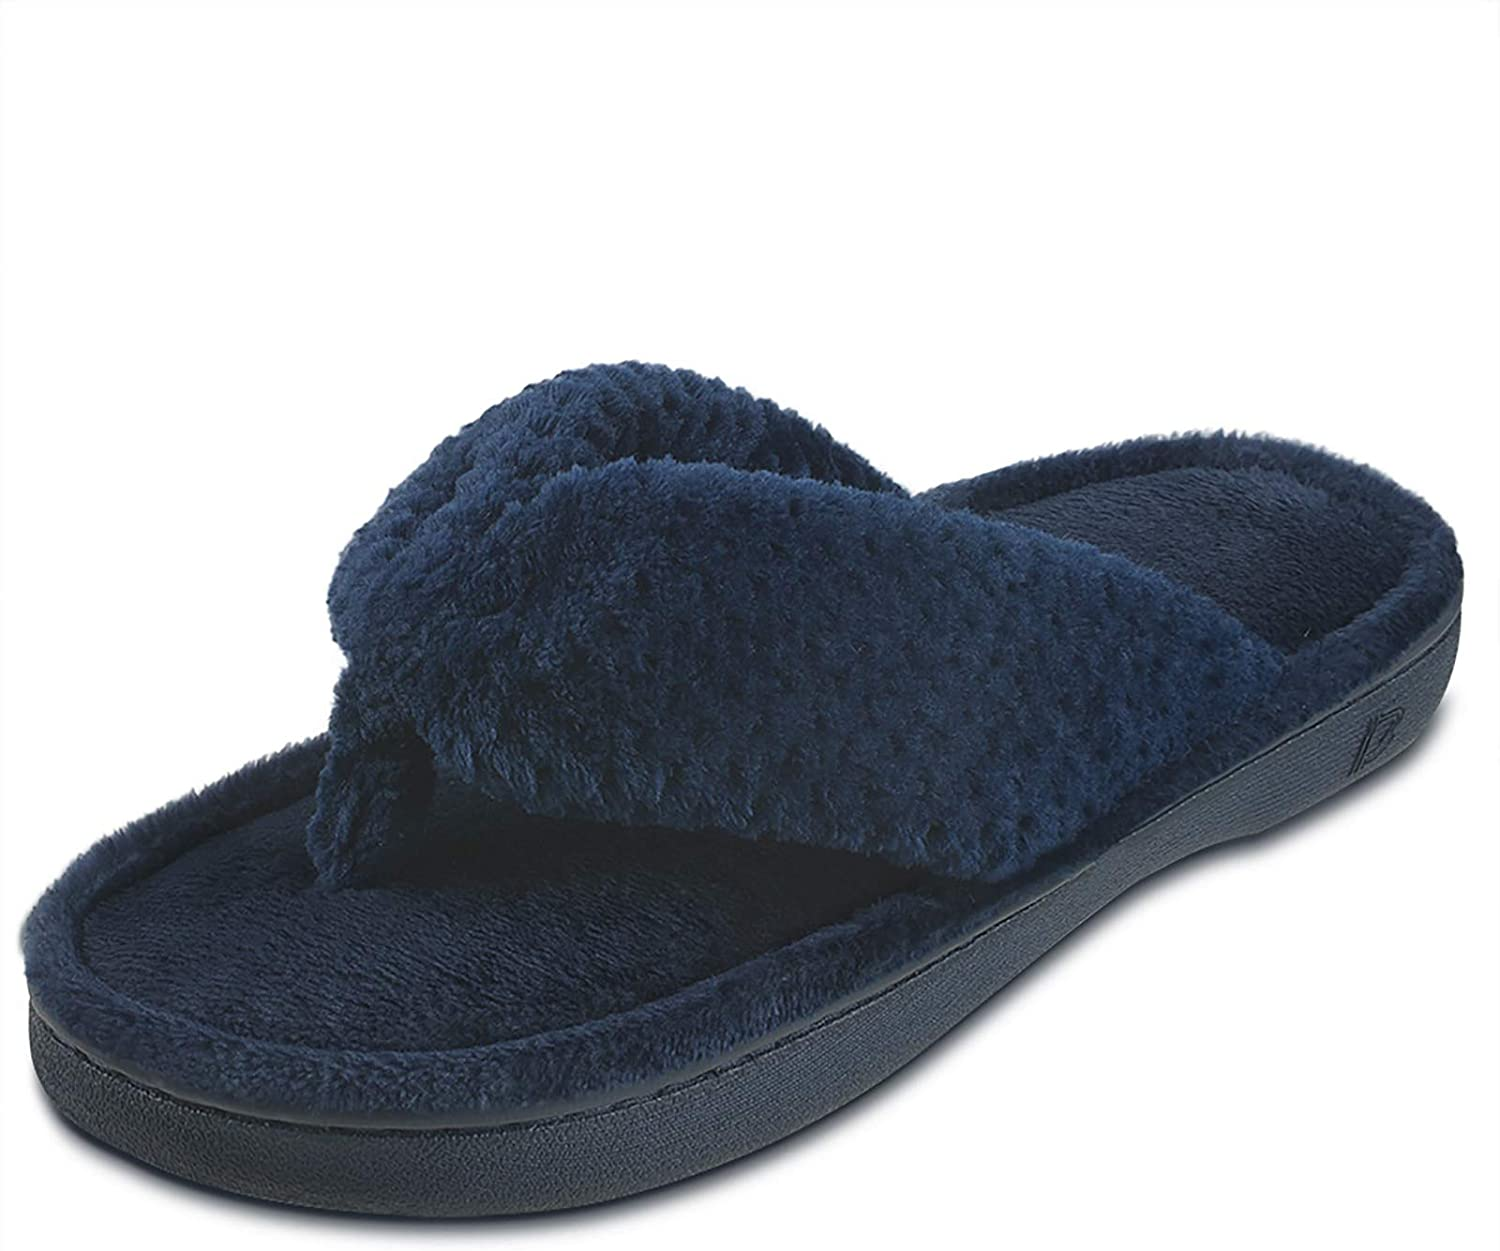 Dena Lives Women's Memory Foam Flip Flop Slippers with Cozy Short Plush Lining,Spa Thong Sandals Mules, Ladies' House Shoes with Indoor Outdoor Anti-Skid Hard Rubber Sole